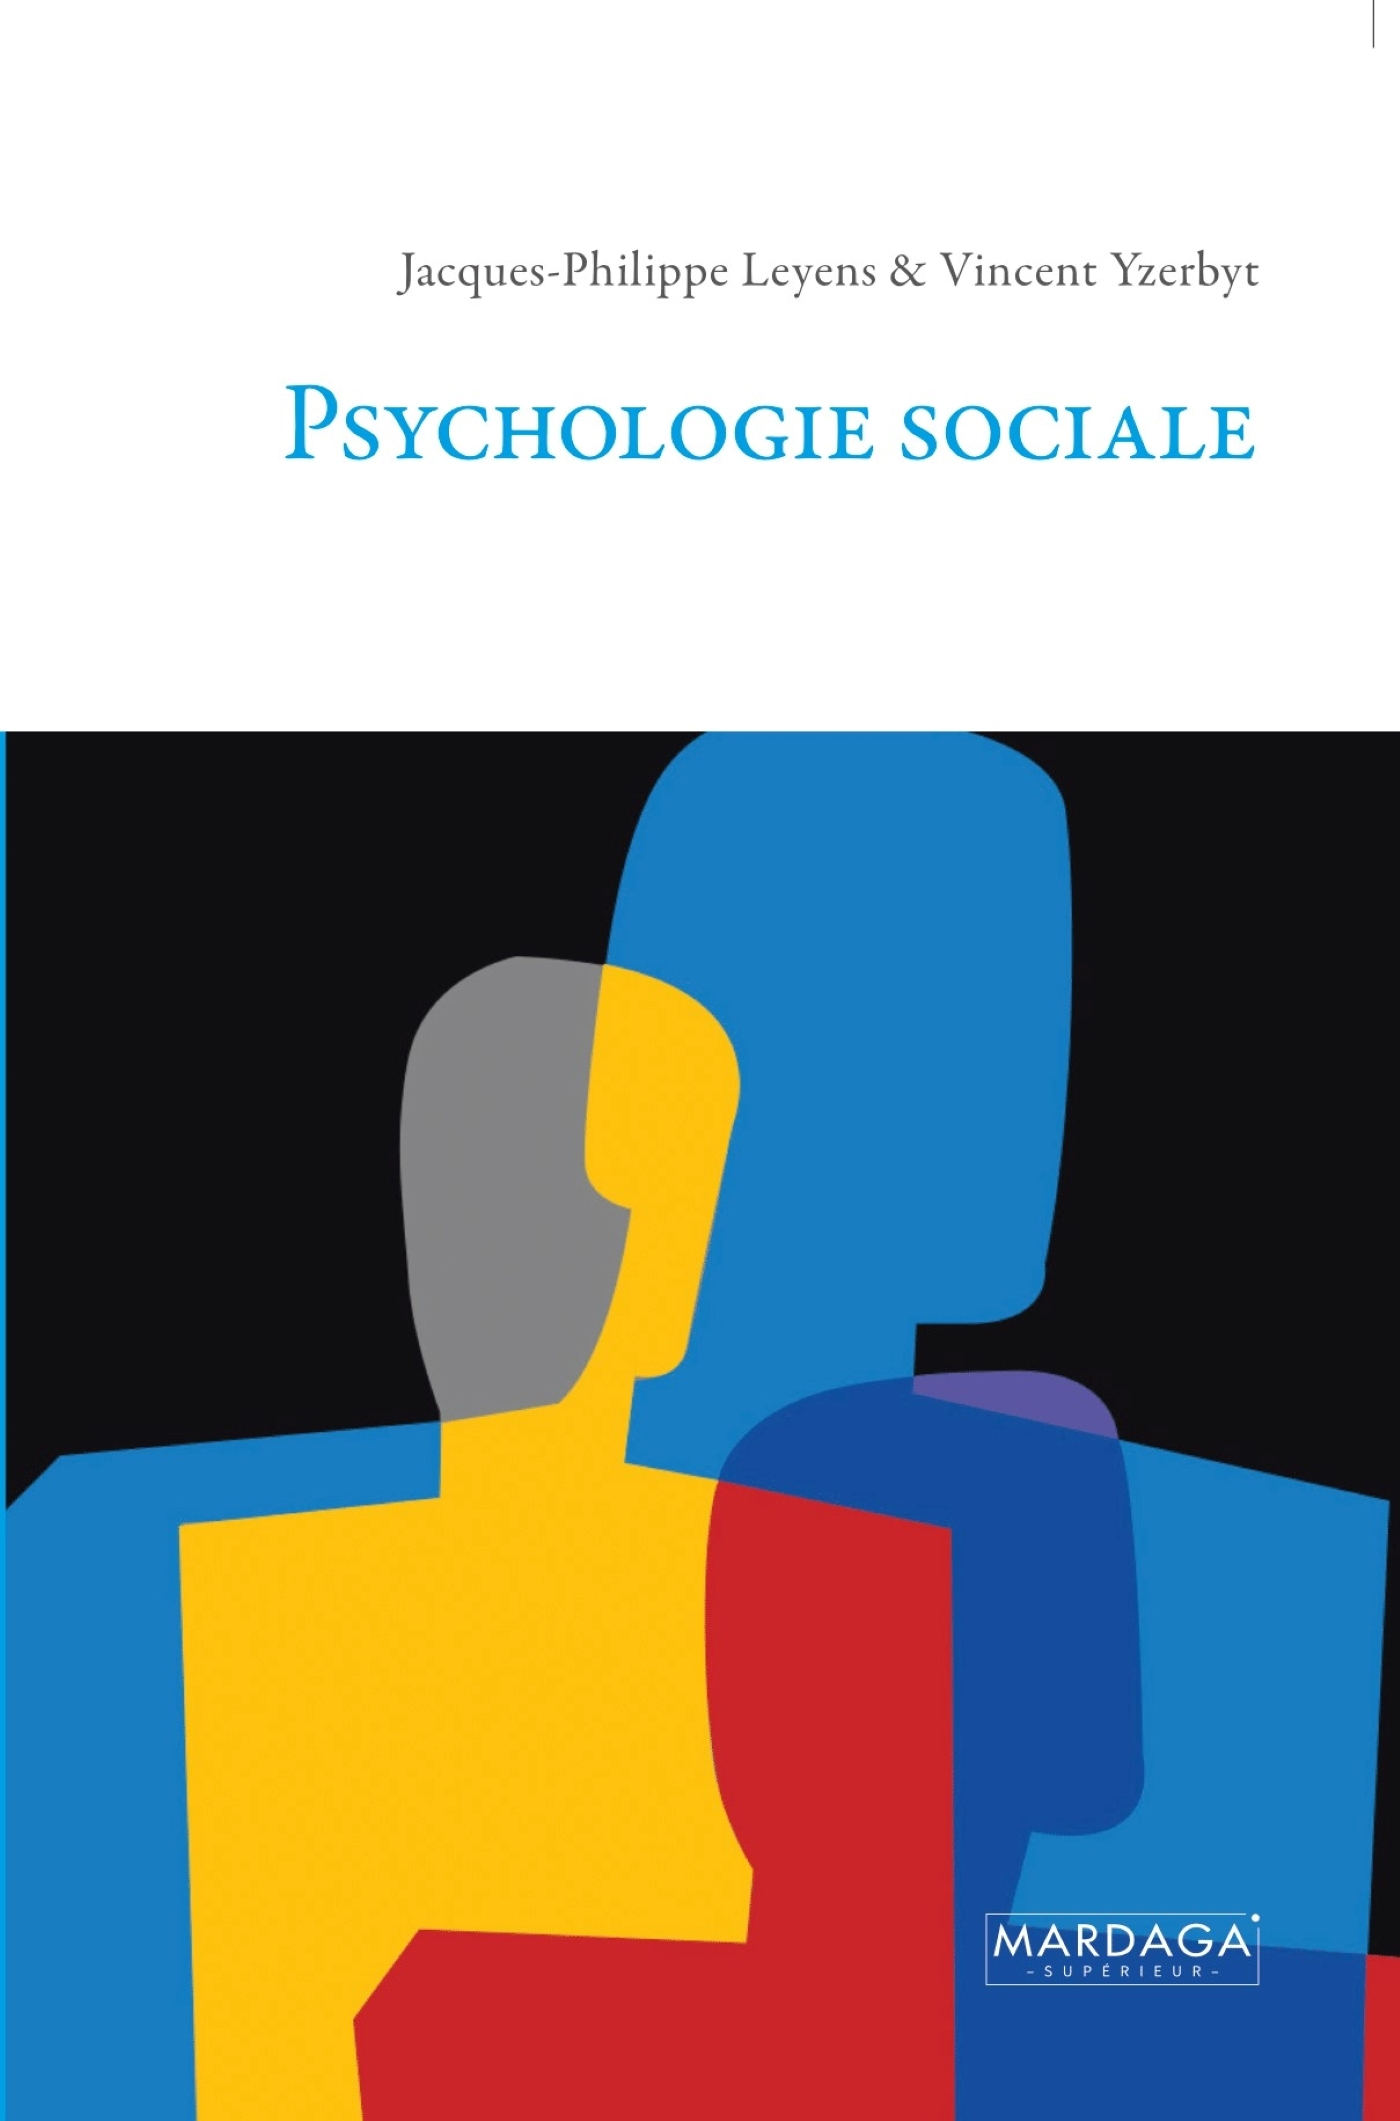 PSYCHOLOGIE SOCIALE 77 NLLE EDITION